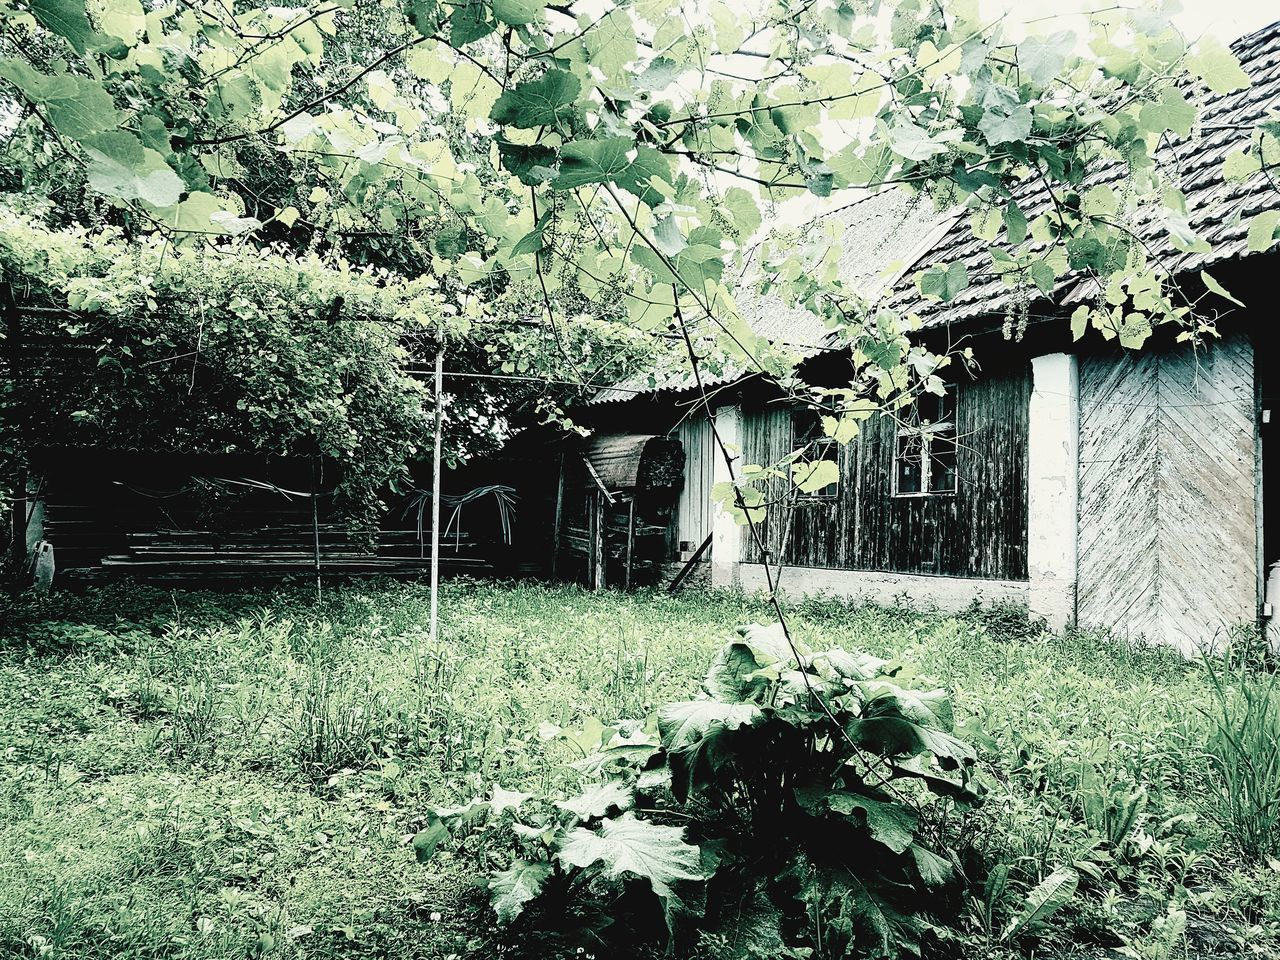 plant, built structure, architecture, tree, growth, building exterior, nature, building, no people, day, house, abandoned, outdoors, flower, plant part, green color, leaf, land, flowering plant, beauty in nature, ruined